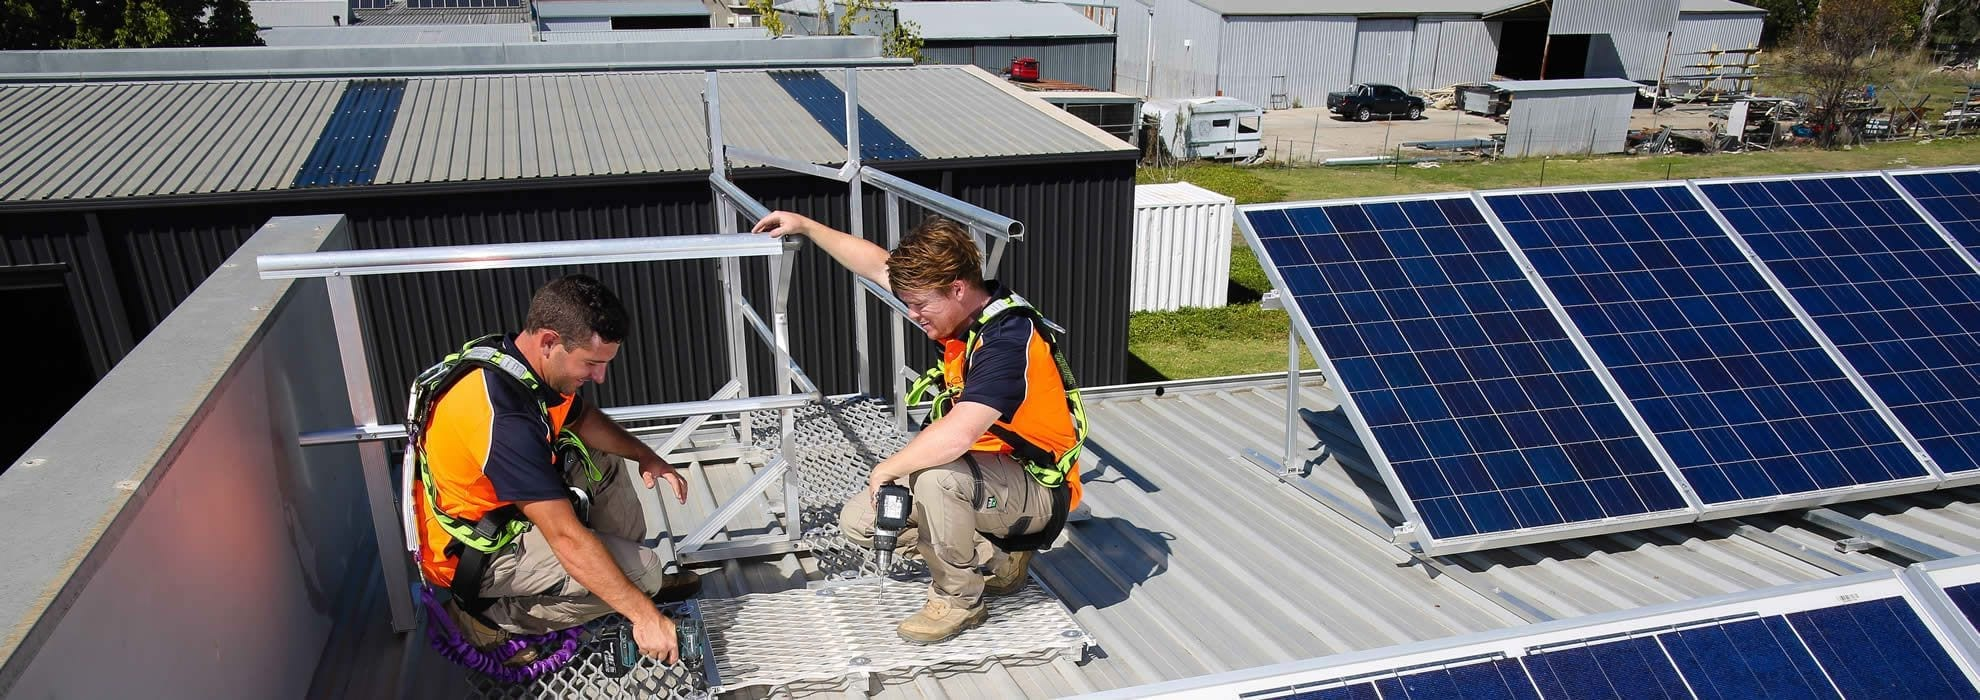 AnchorSafe employees on rooftop installing products